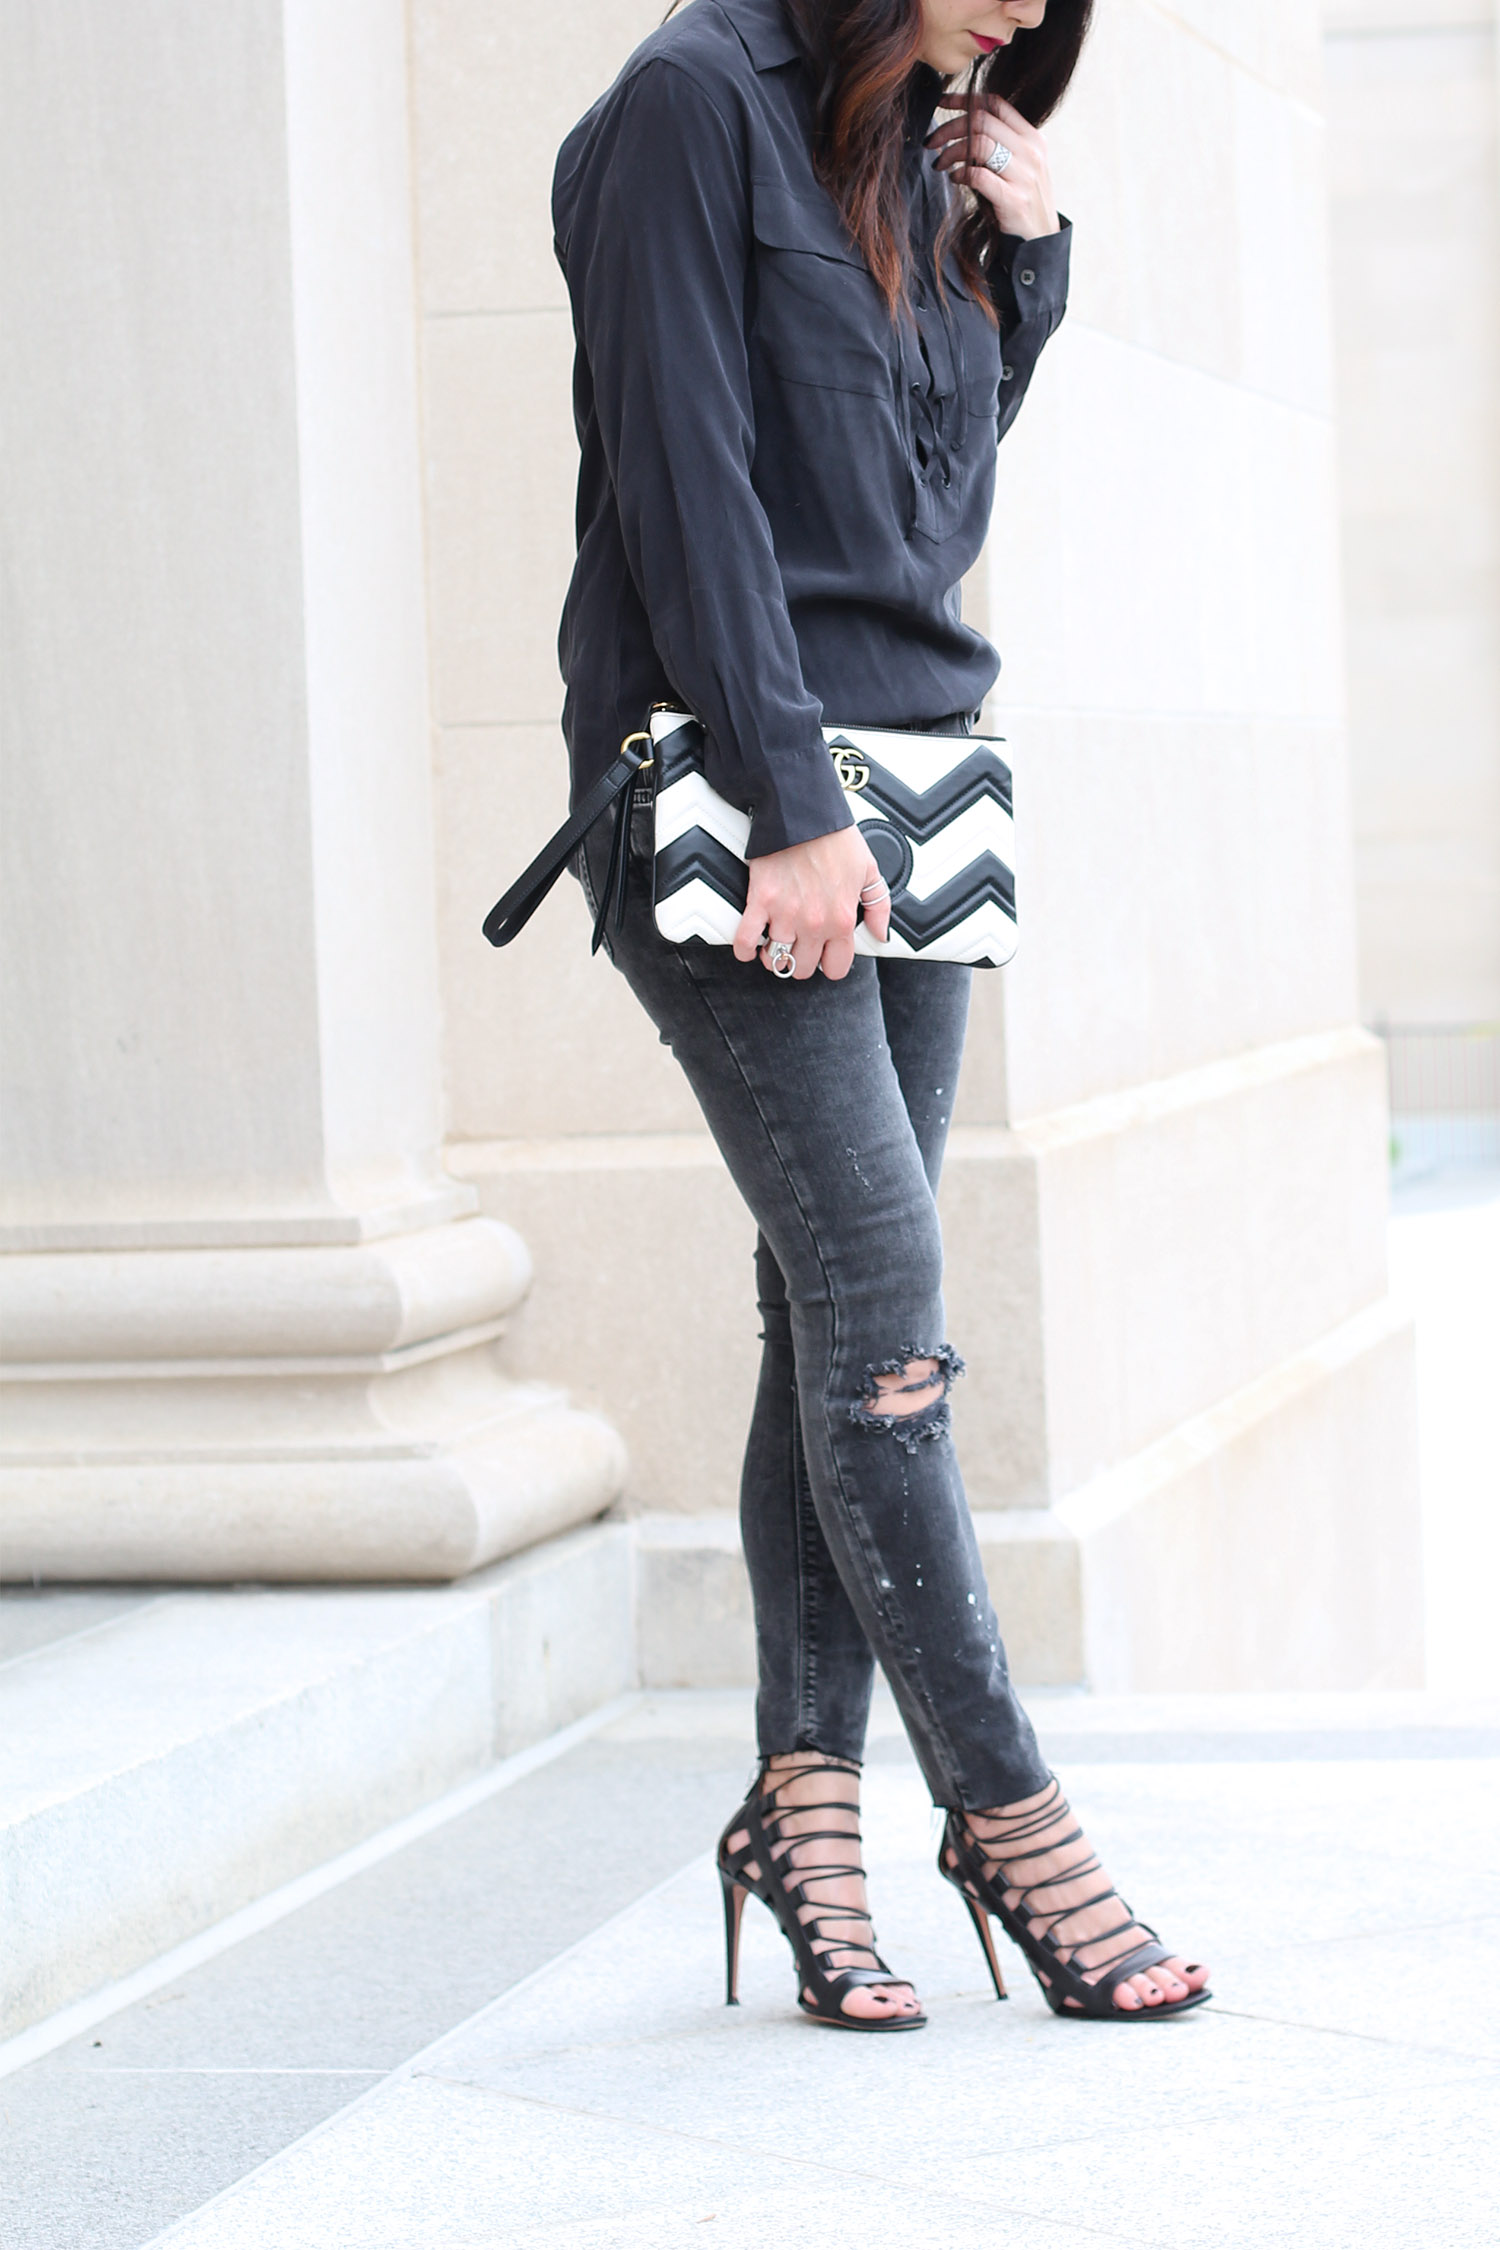 Silk blouse with distressed jeans